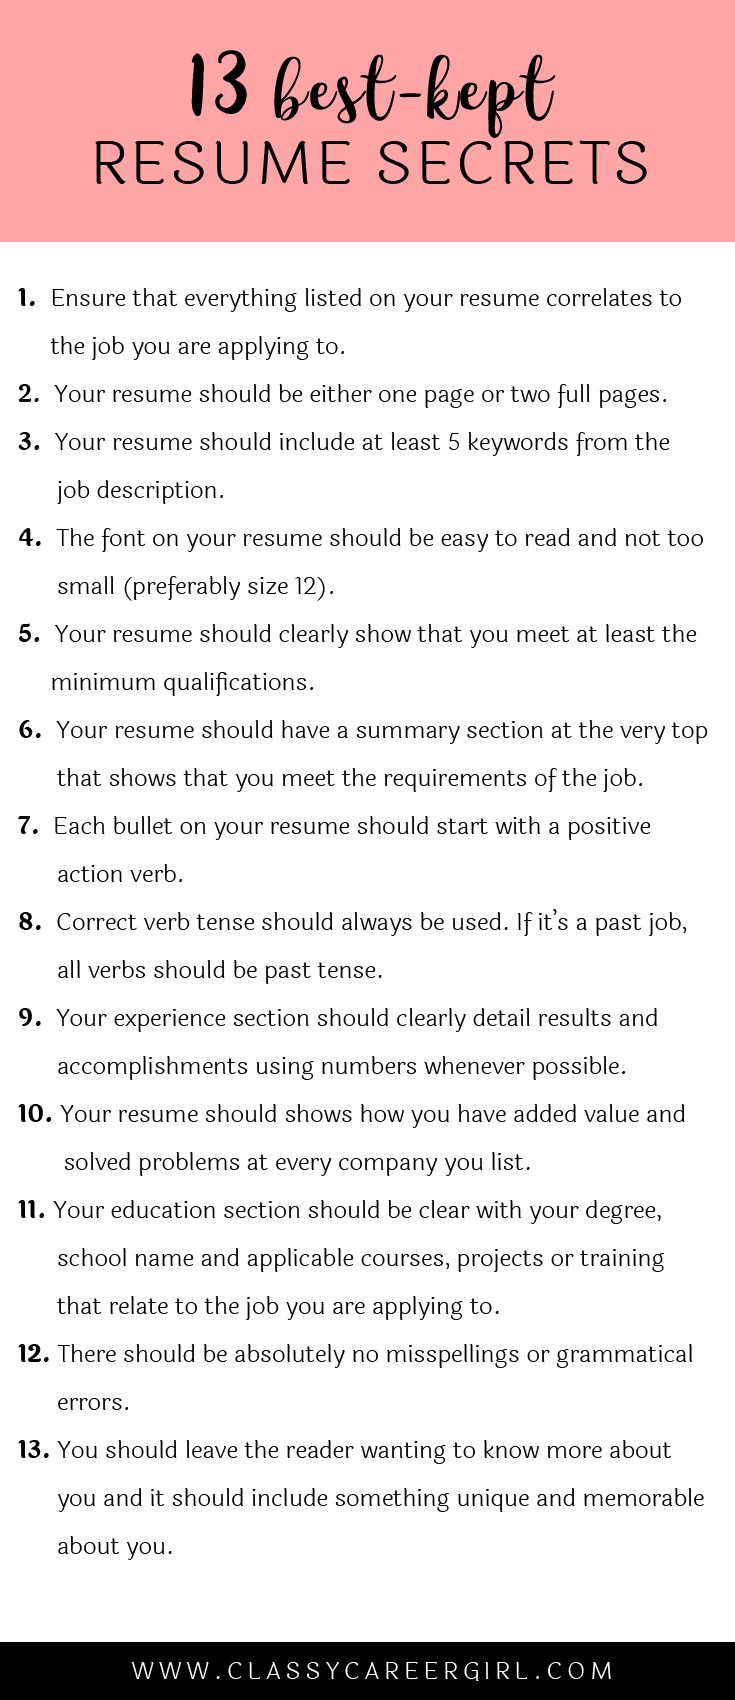 Picnictoimpeachus  Terrific  Ideas About Resume On Pinterest  Cv Format Resume Cv And  With Fair Some Hiring Managers Will Toss Your Resume Out If You Dont Know These  With Delectable Objective Line For Resume Also Free Blank Resume Templates For Microsoft Word In Addition Executive Resume Sample And Basic Resume Cover Letter As Well As Icu Resume Additionally Community Manager Resume From Pinterestcom With Picnictoimpeachus  Fair  Ideas About Resume On Pinterest  Cv Format Resume Cv And  With Delectable Some Hiring Managers Will Toss Your Resume Out If You Dont Know These  And Terrific Objective Line For Resume Also Free Blank Resume Templates For Microsoft Word In Addition Executive Resume Sample From Pinterestcom